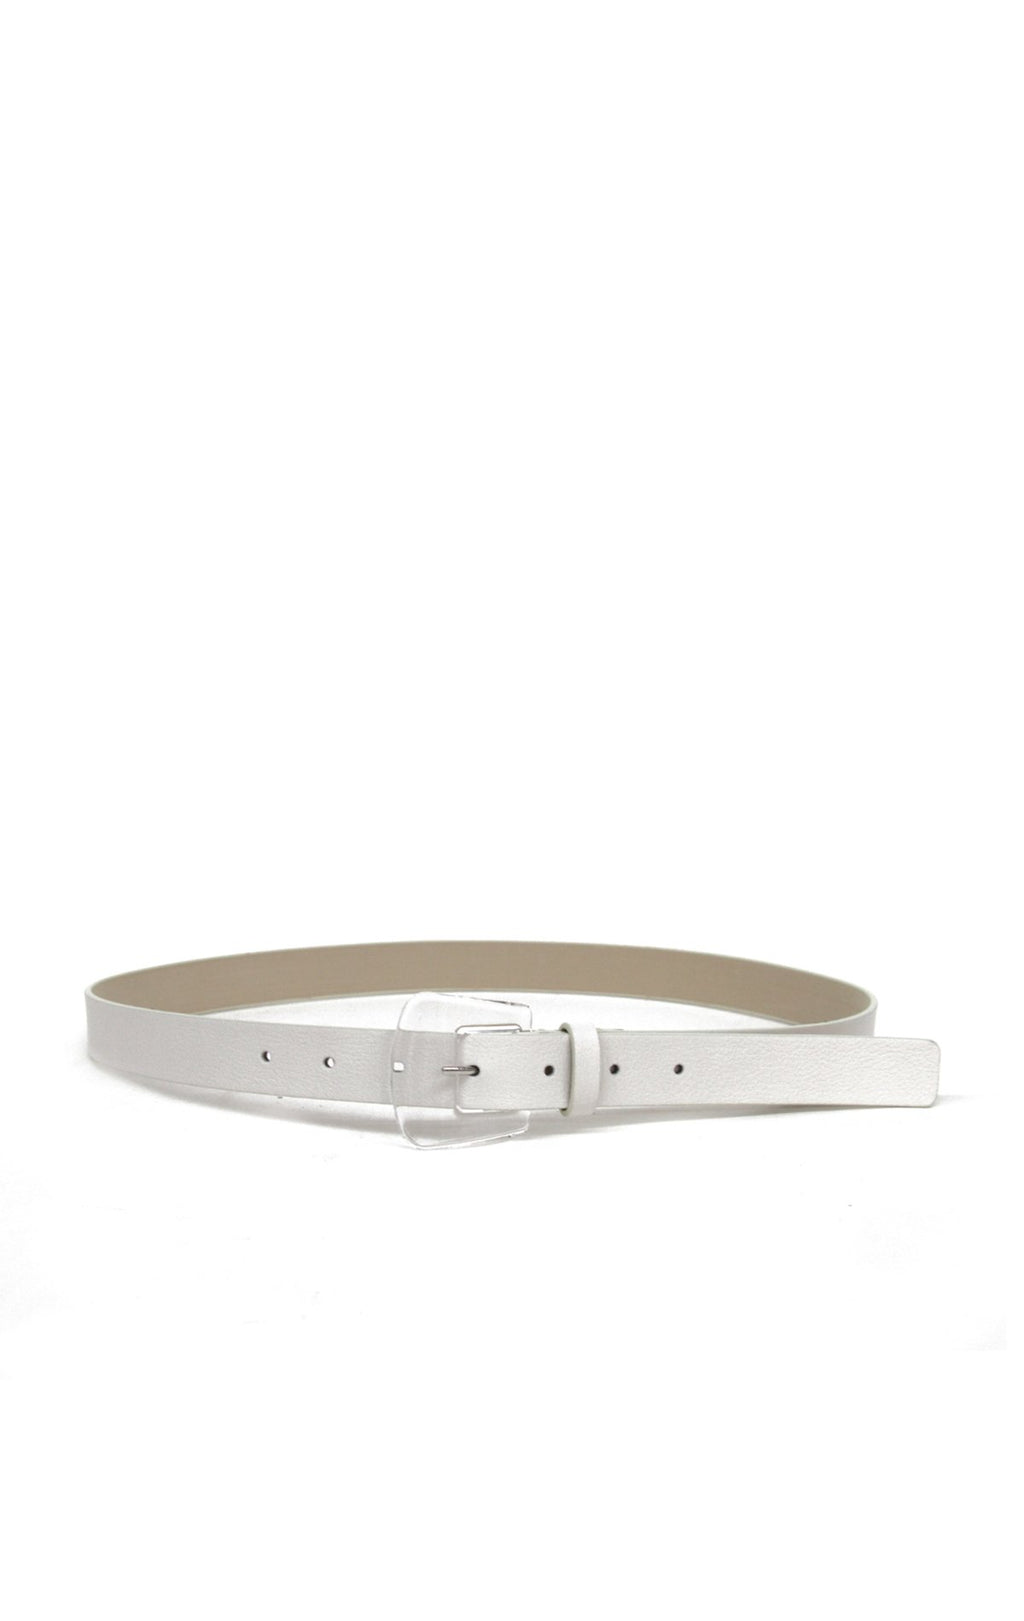 Carmar Denim: B-LOW THE BELT CECE MINI LEATHER BELT - BELT